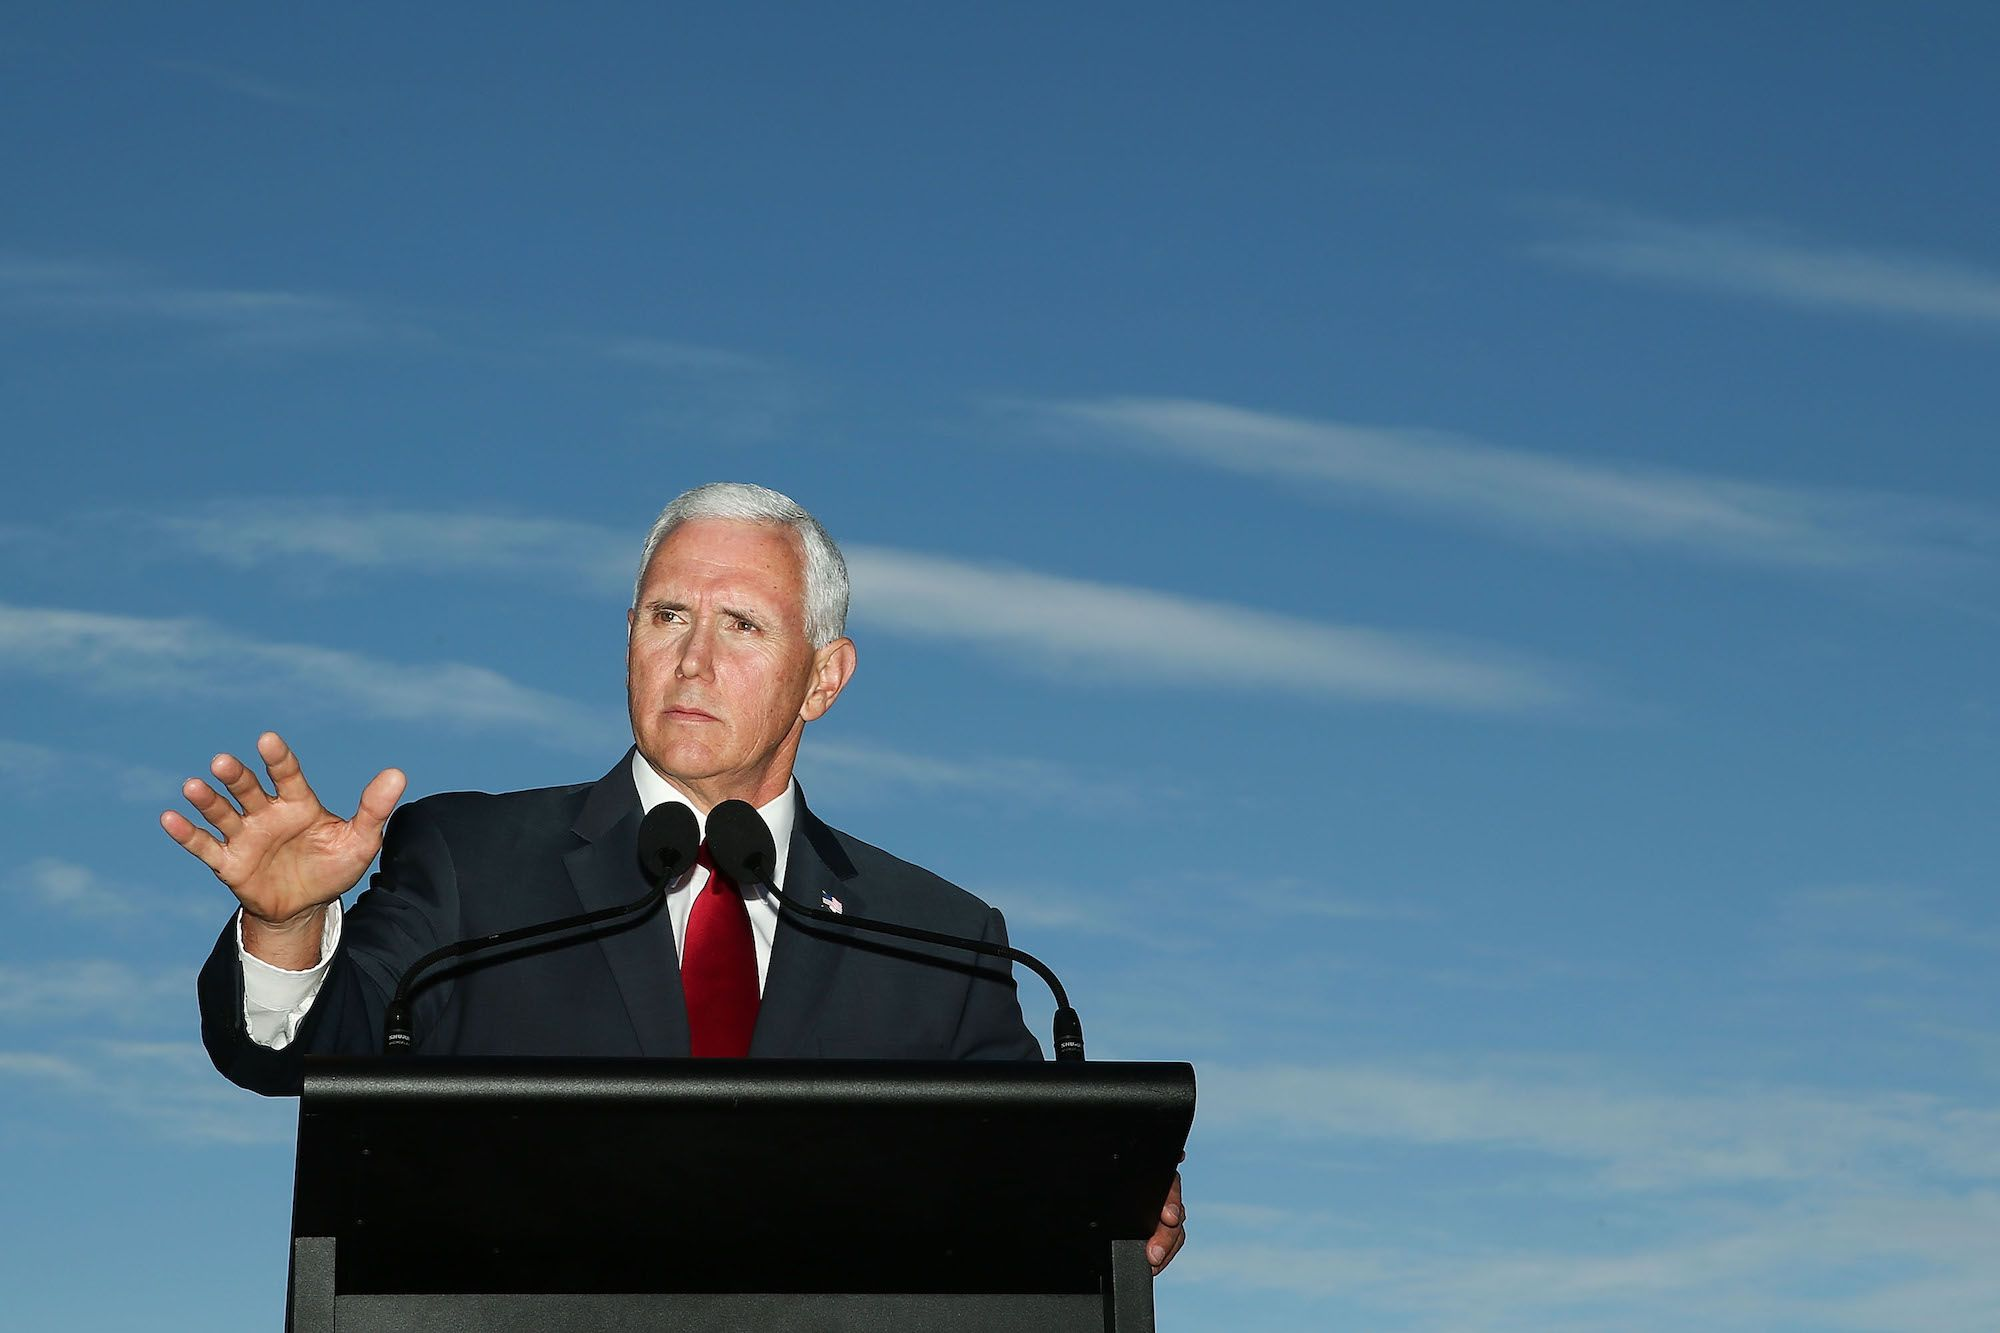 The vice president attempted to memorialize the victims of an anti-Semitic attack in Pittsburgh.